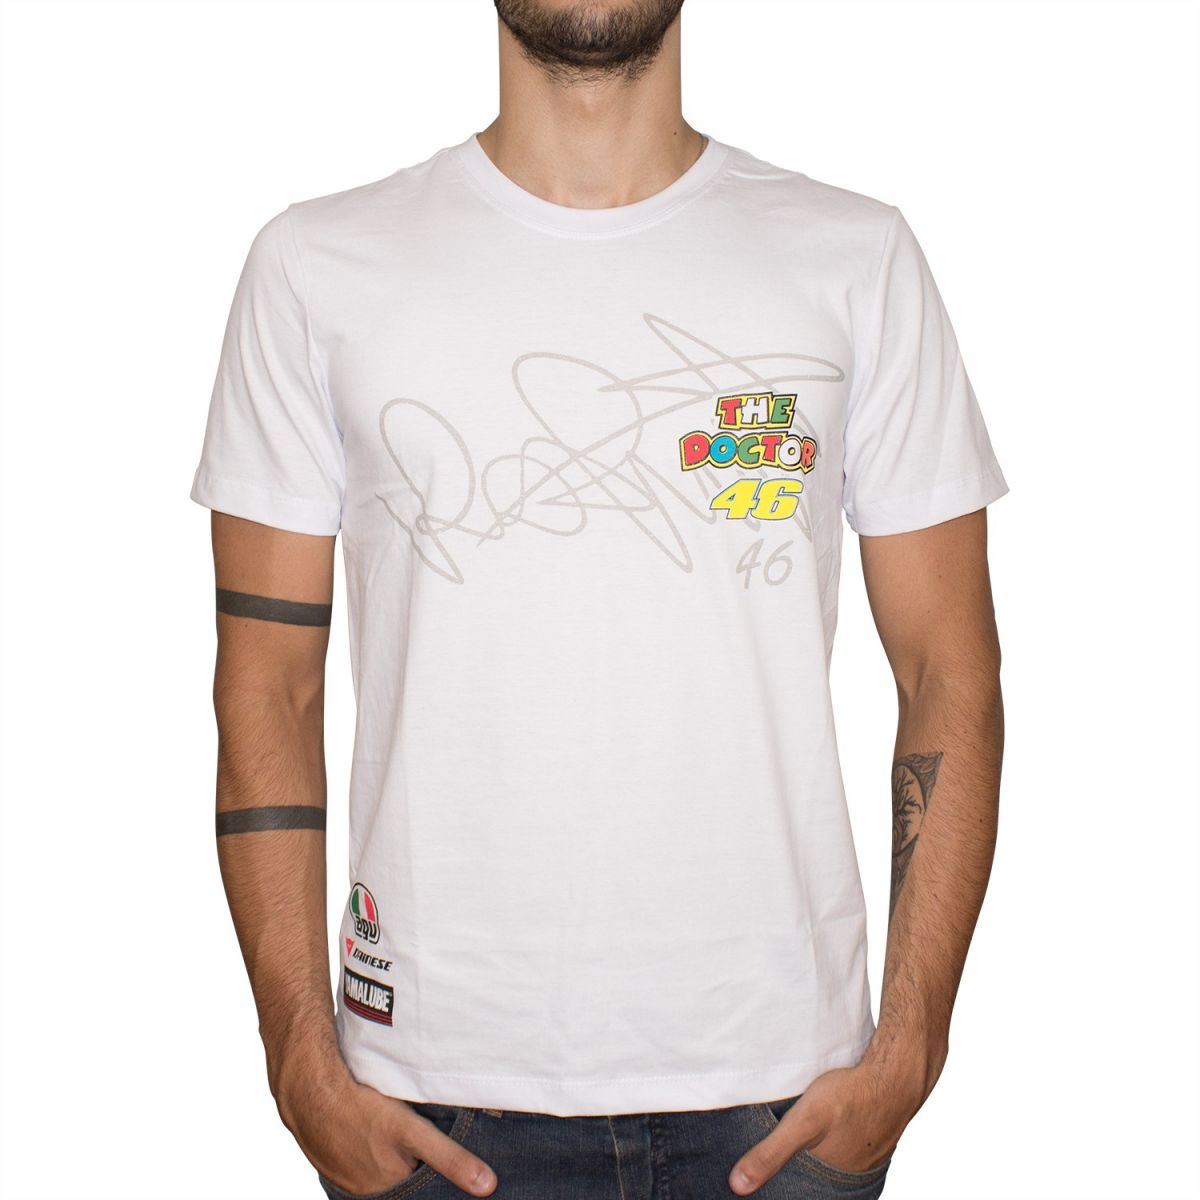 Camiseta Speed Race The Doctor 46 (Branca) Lan�amento!!  - Super Bike - Loja Oficial Alpinestars